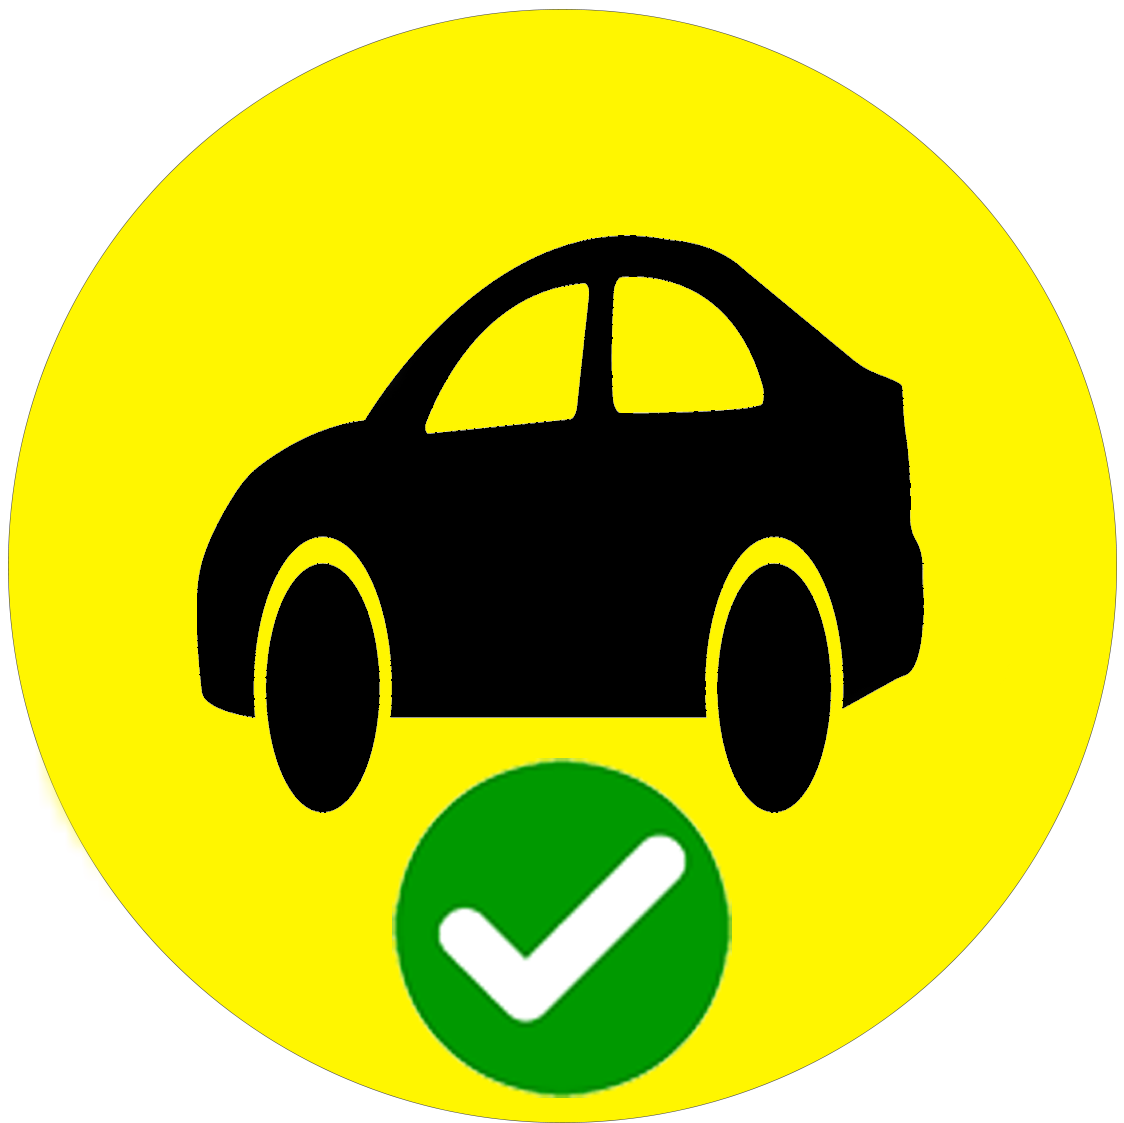 Car YES icon